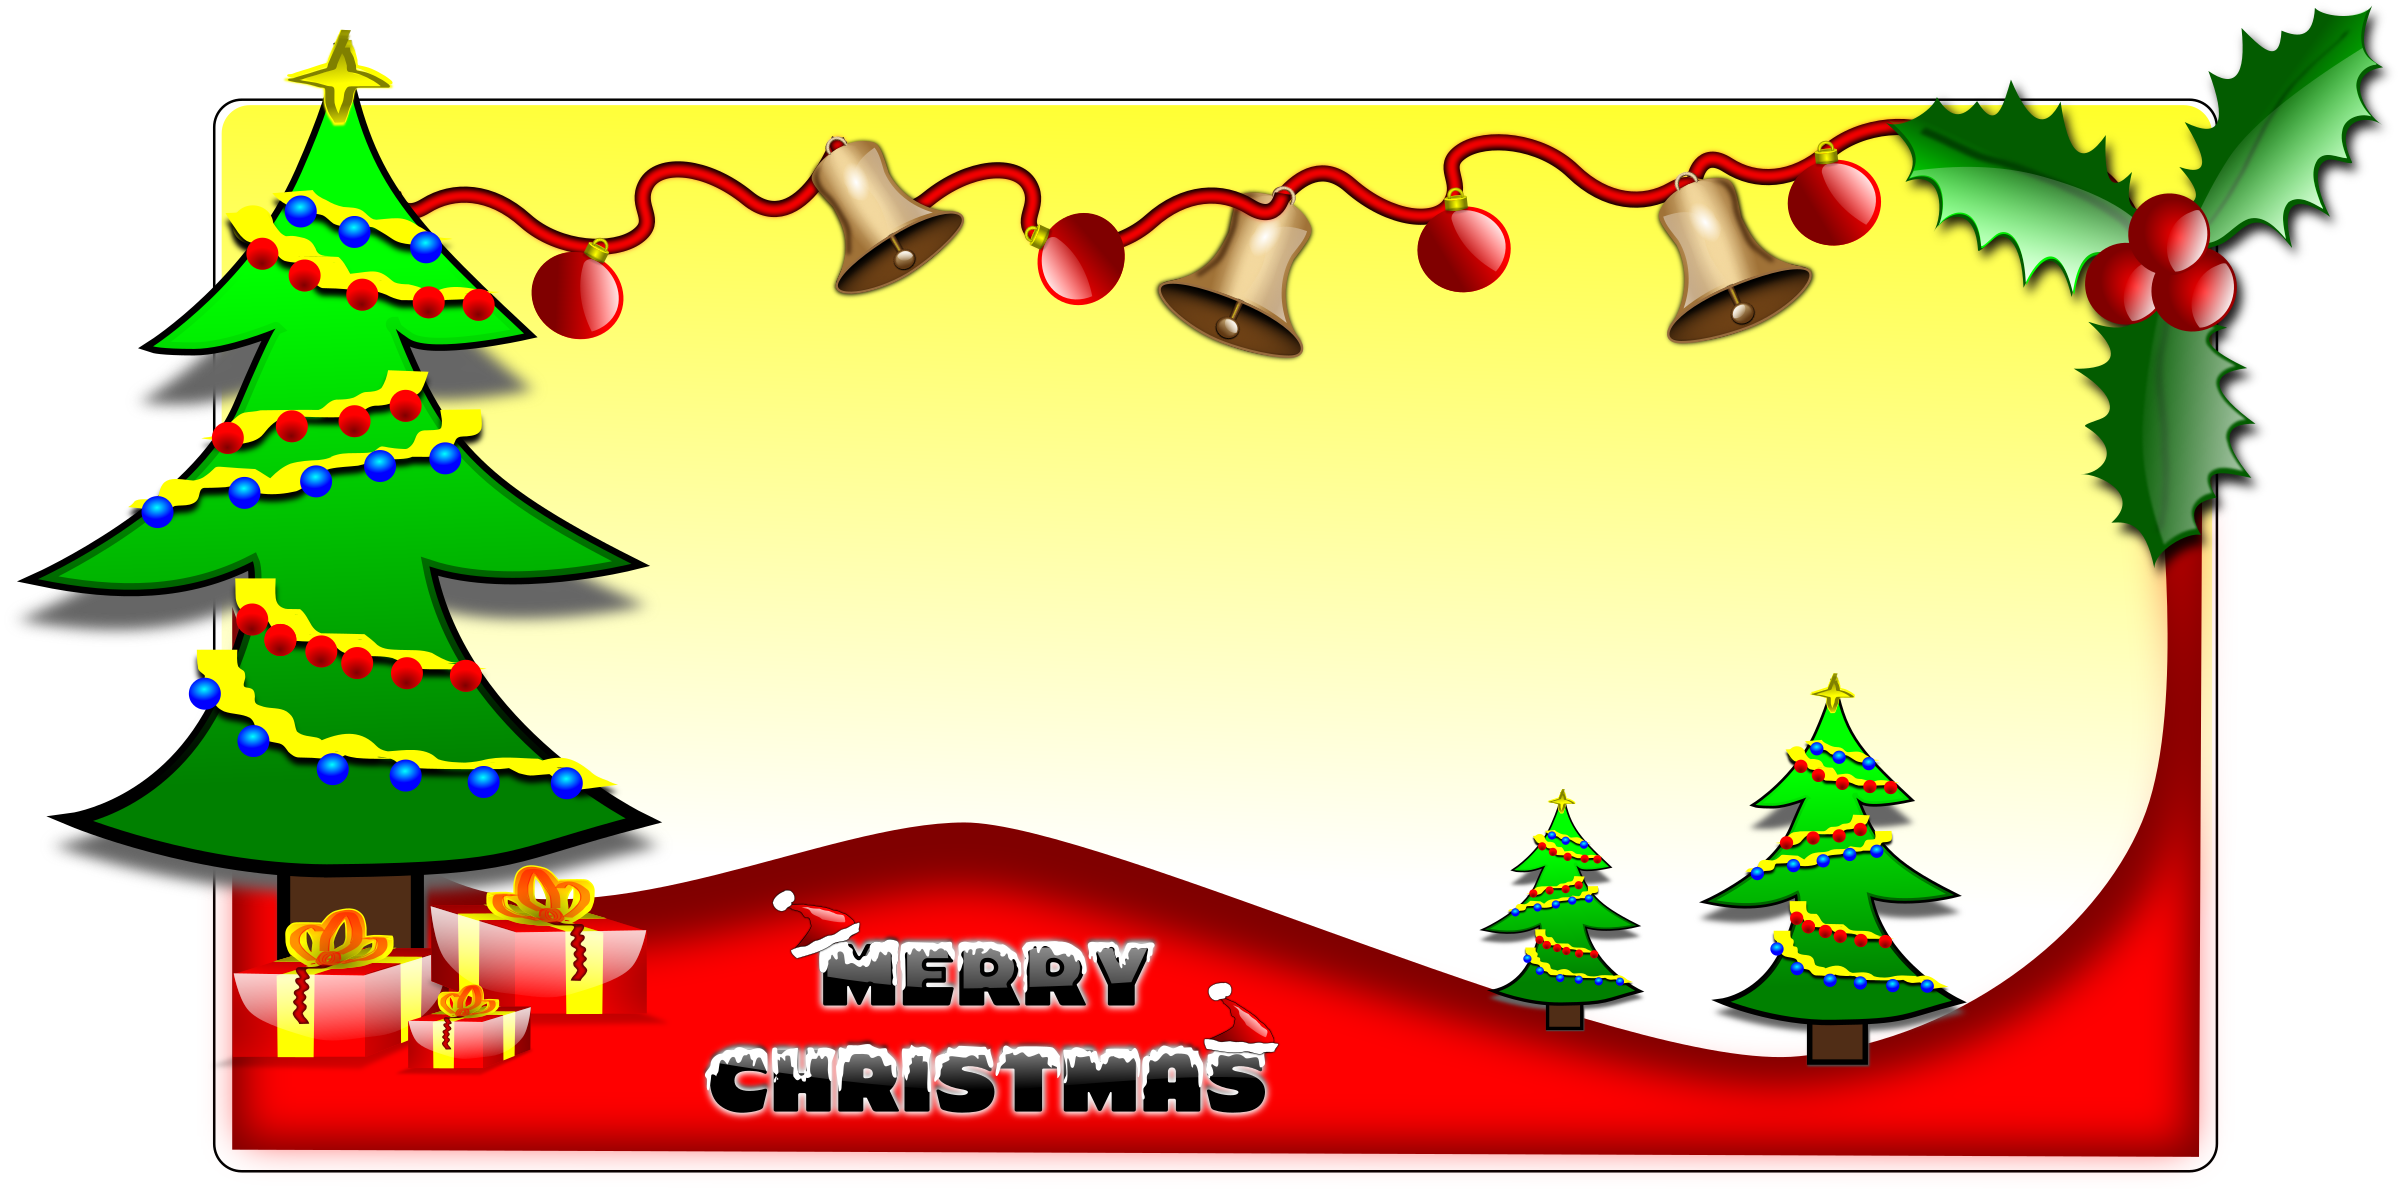 Christmas tree banner clipart graphic transparent stock Clipart - Christmas L1 graphic transparent stock